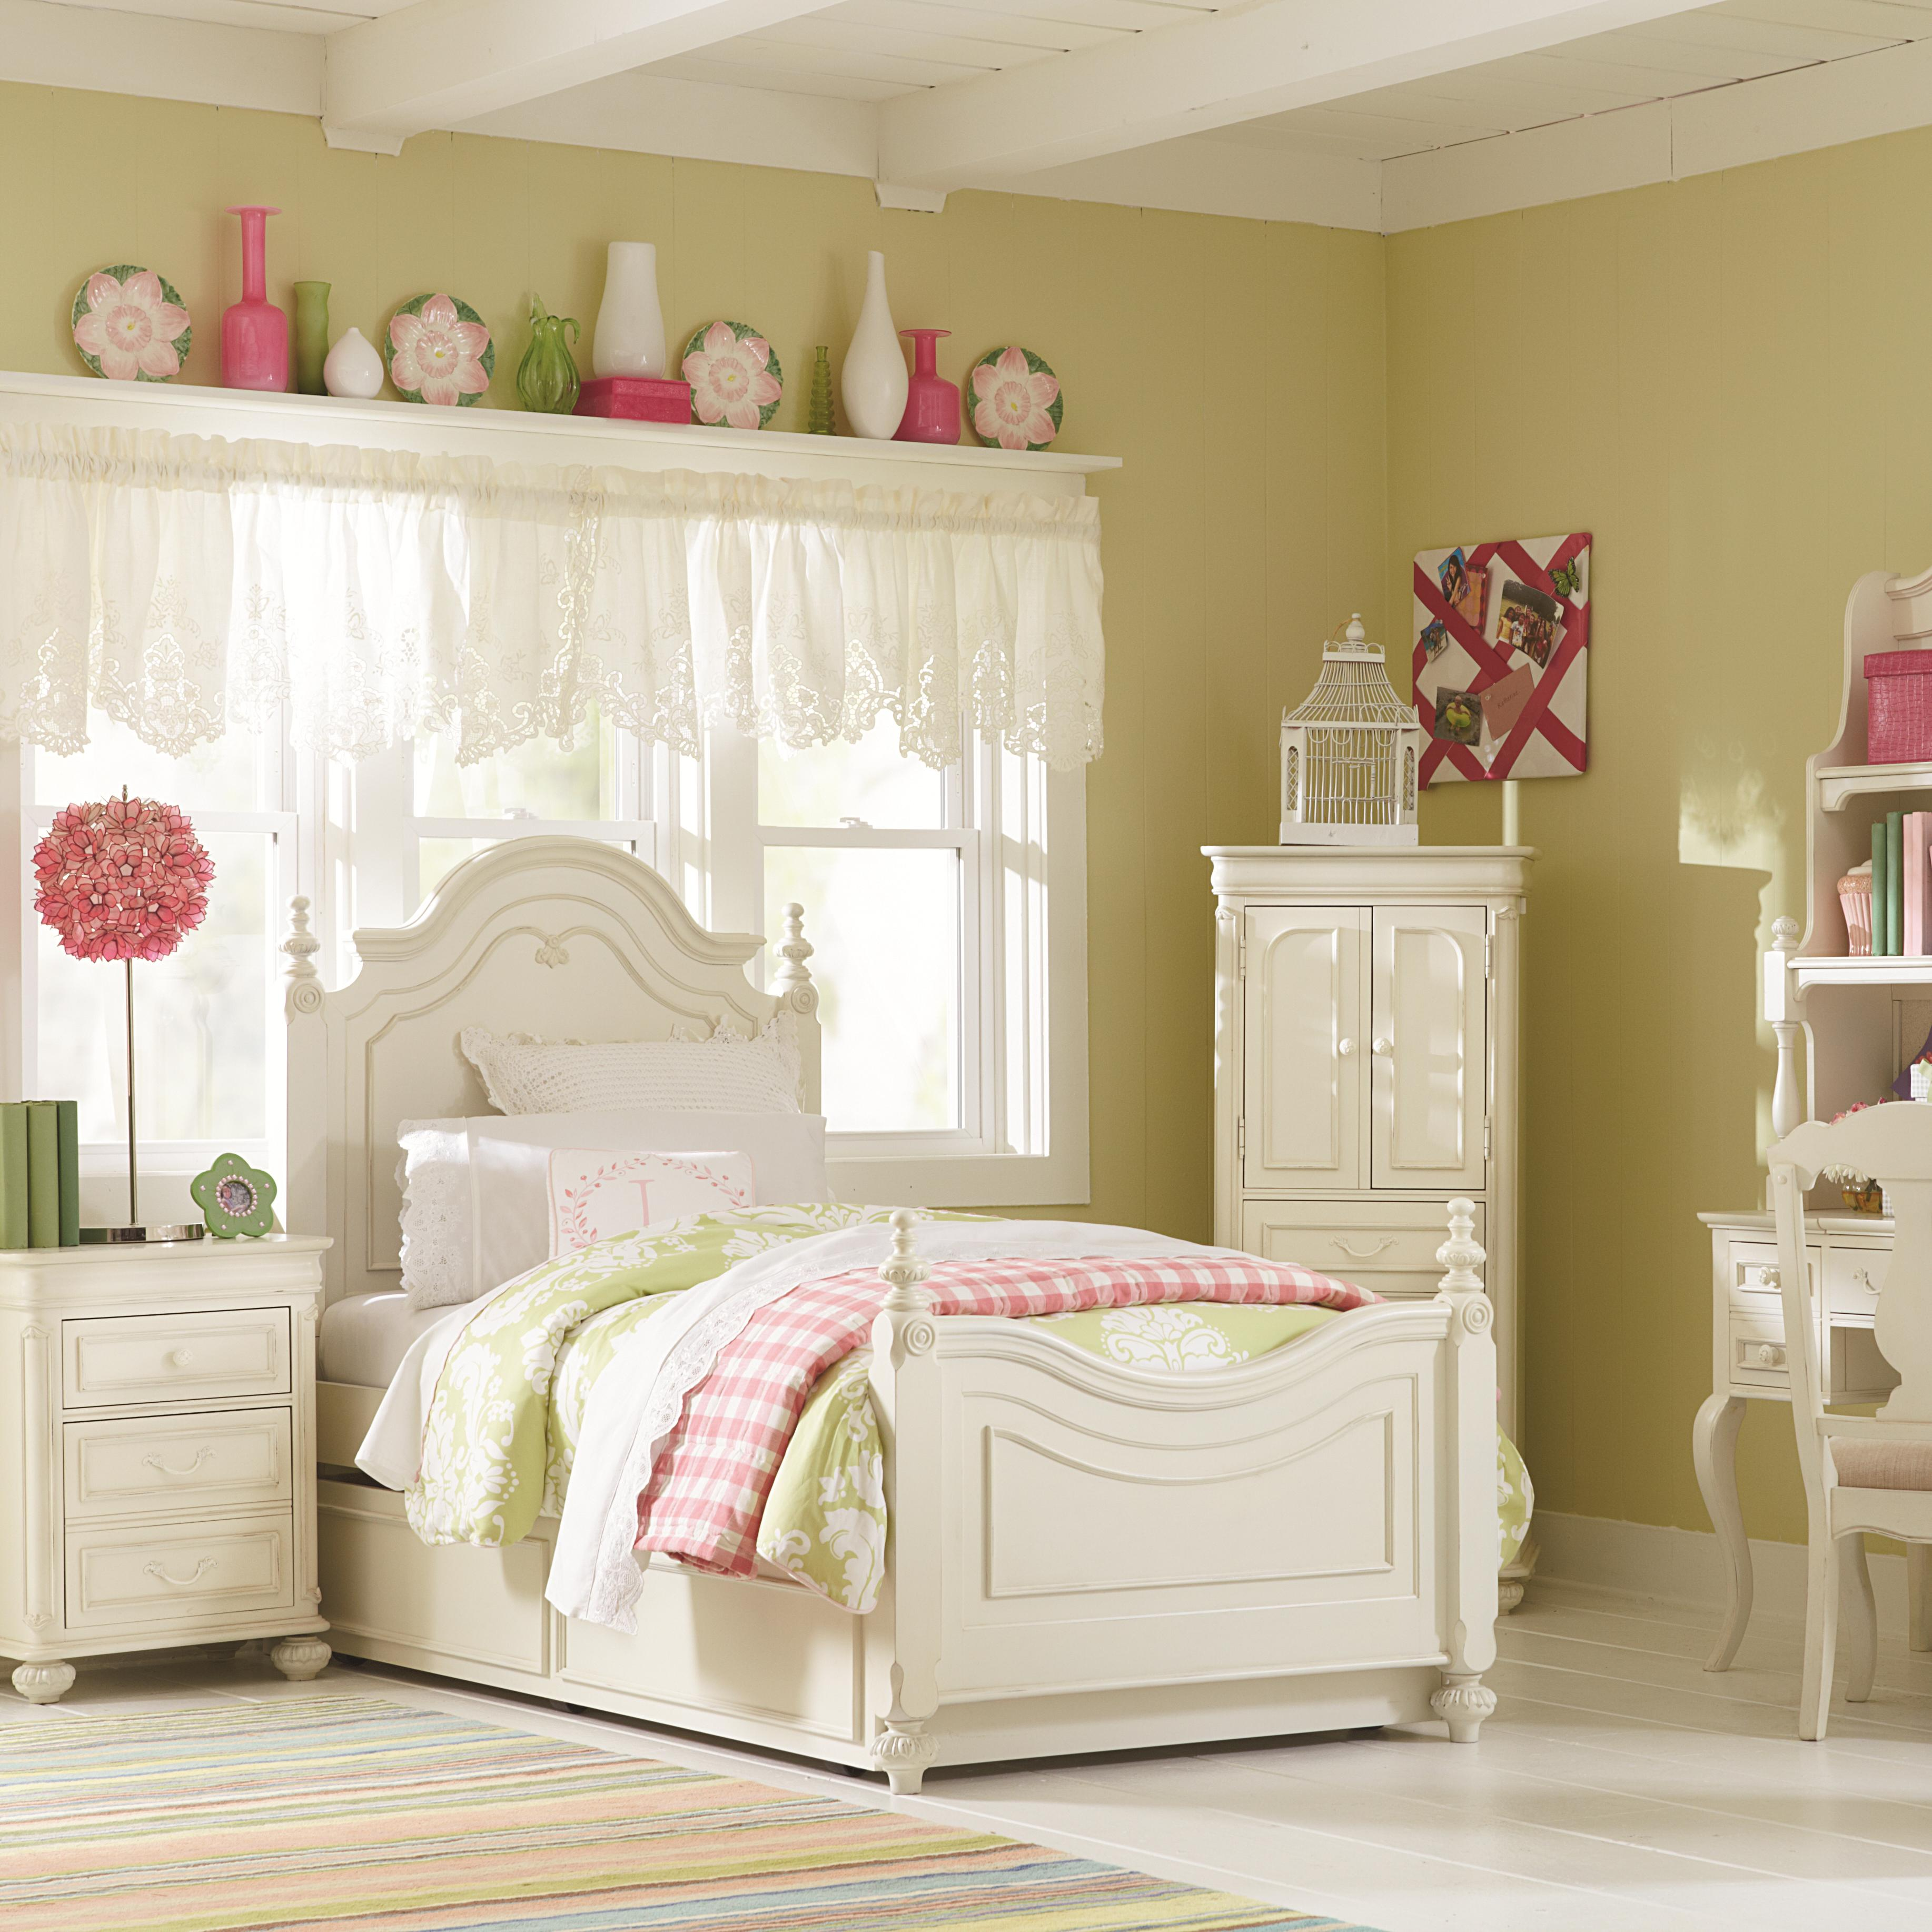 Legacy Classic Kids Charlotte Full Bedroom Group - Item Number: 3850 F Bedroom Group 7